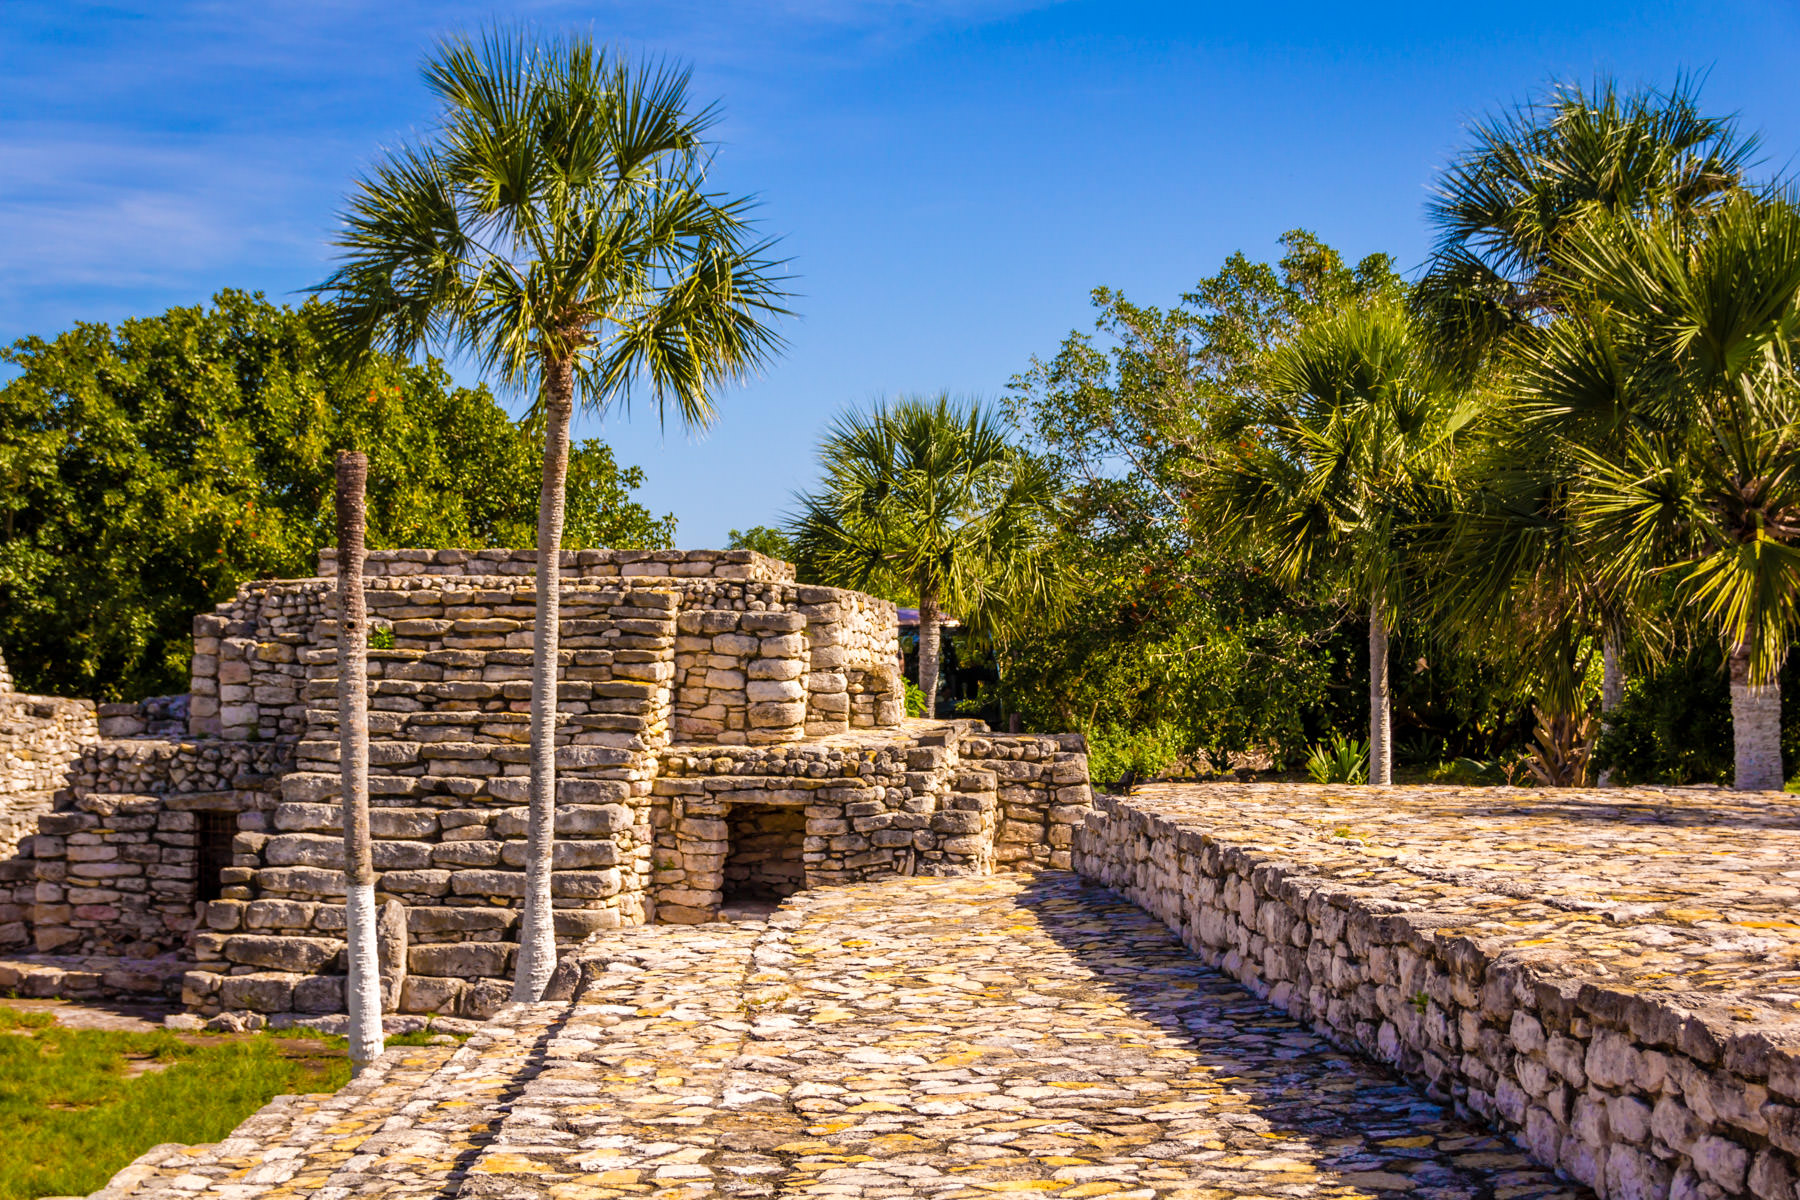 The Mayan ruins of Xcambo rise from the forests of Mexico's Yucatan Peninsula.